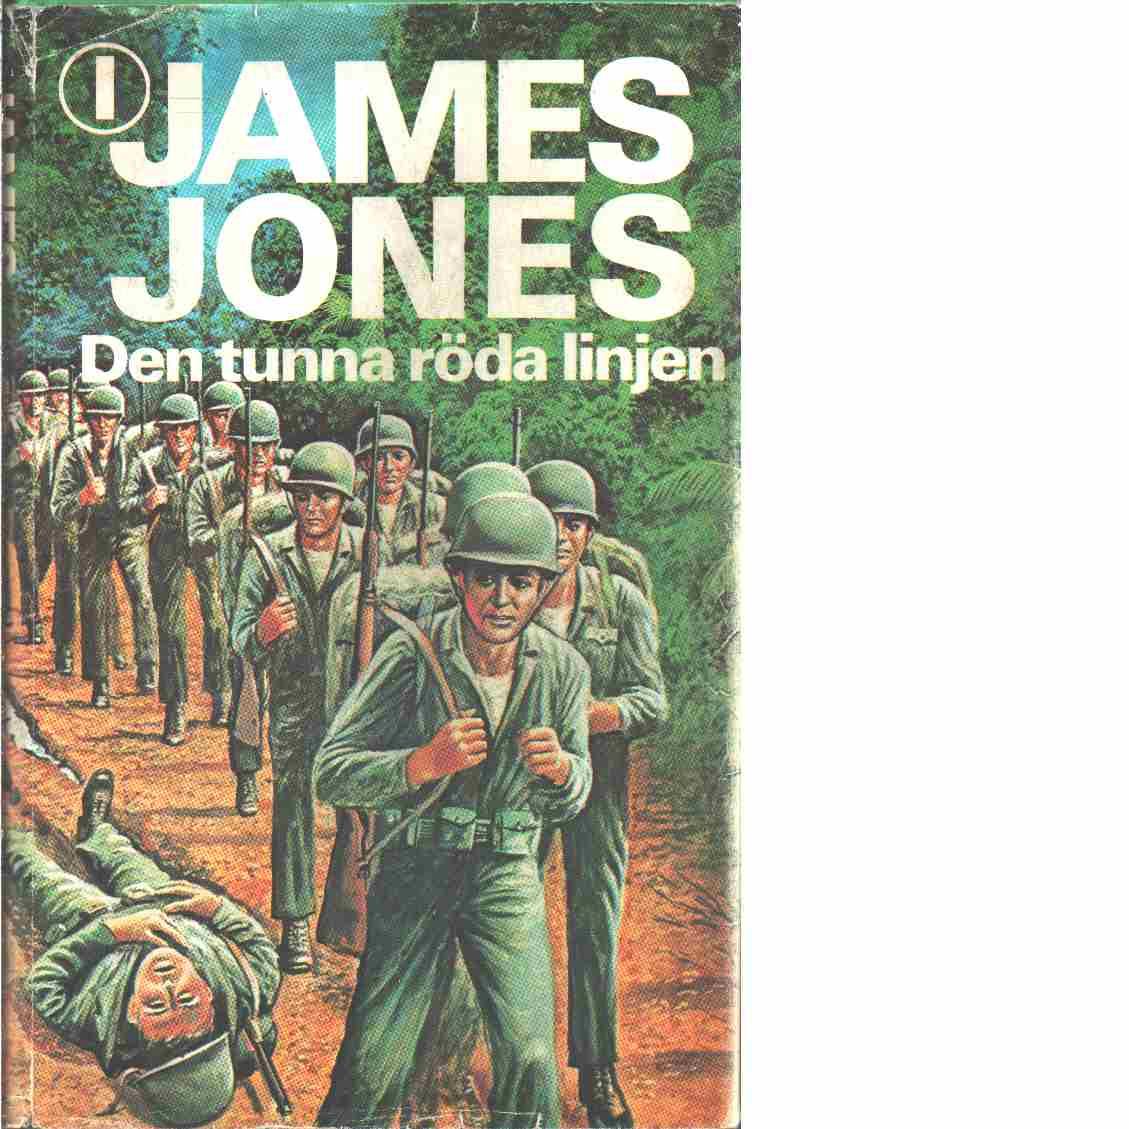 Den tunna röda linjen. 1 - Jones, James